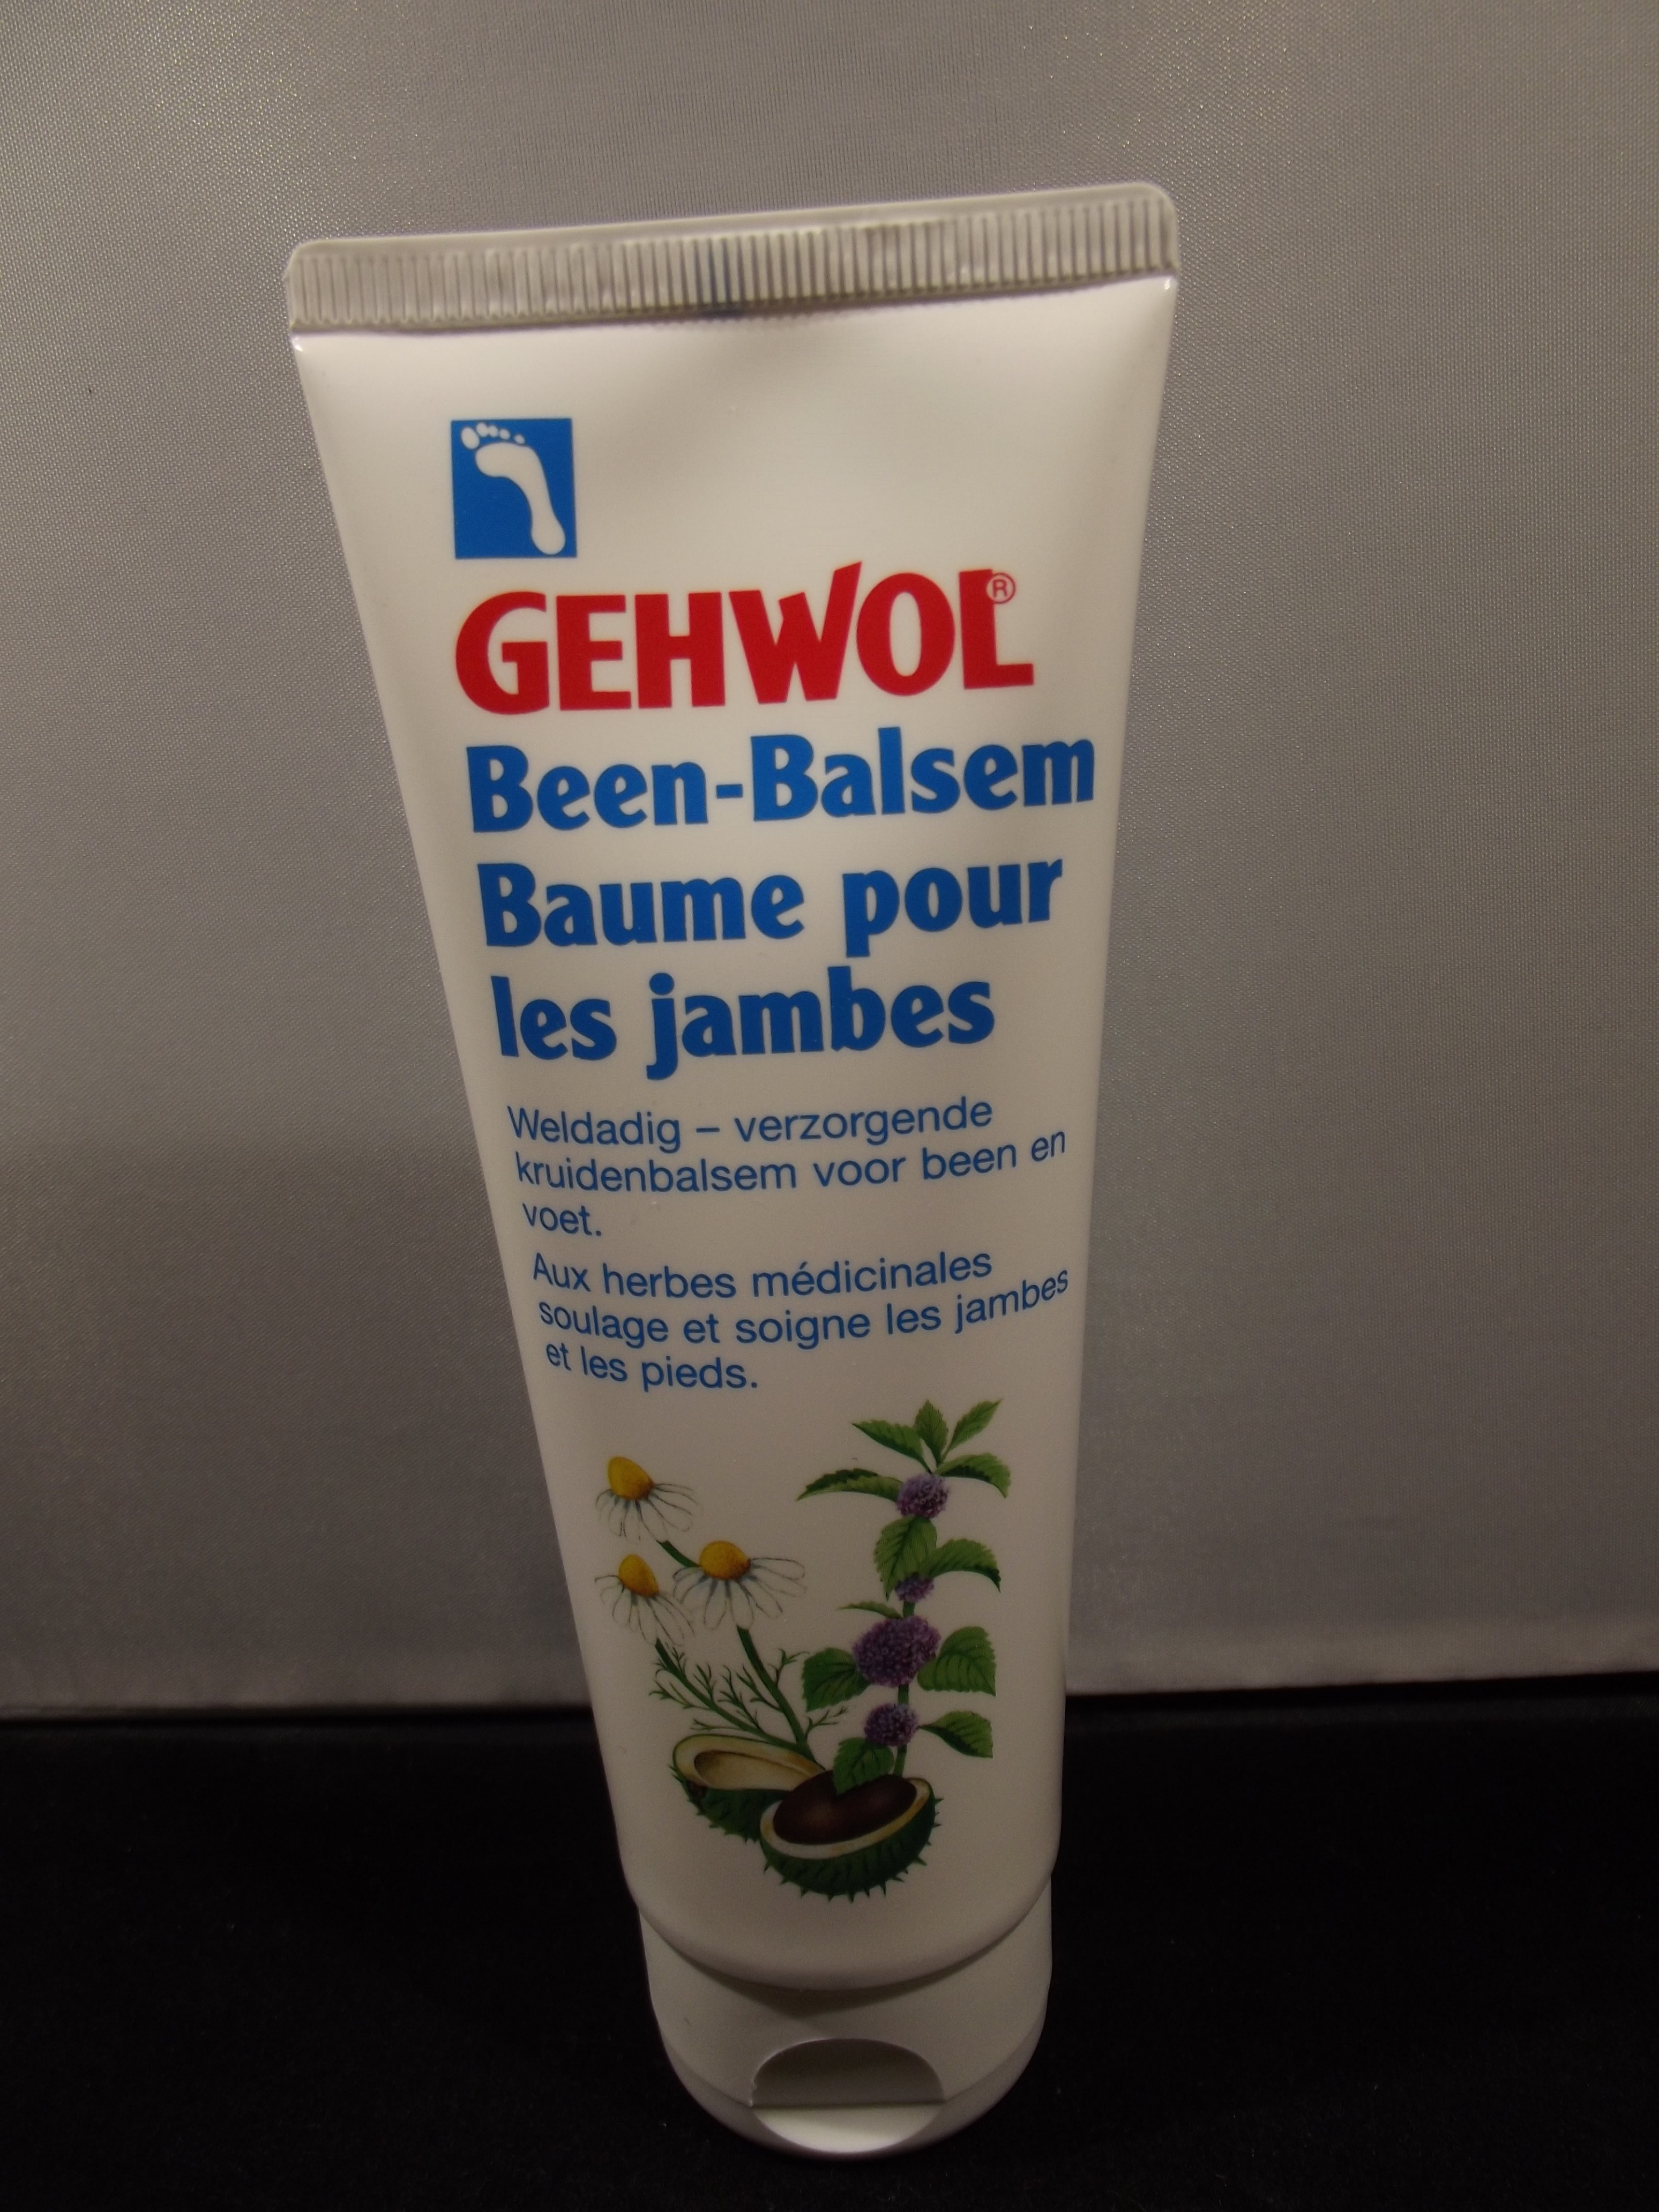 Gehwol baume pour les jambes